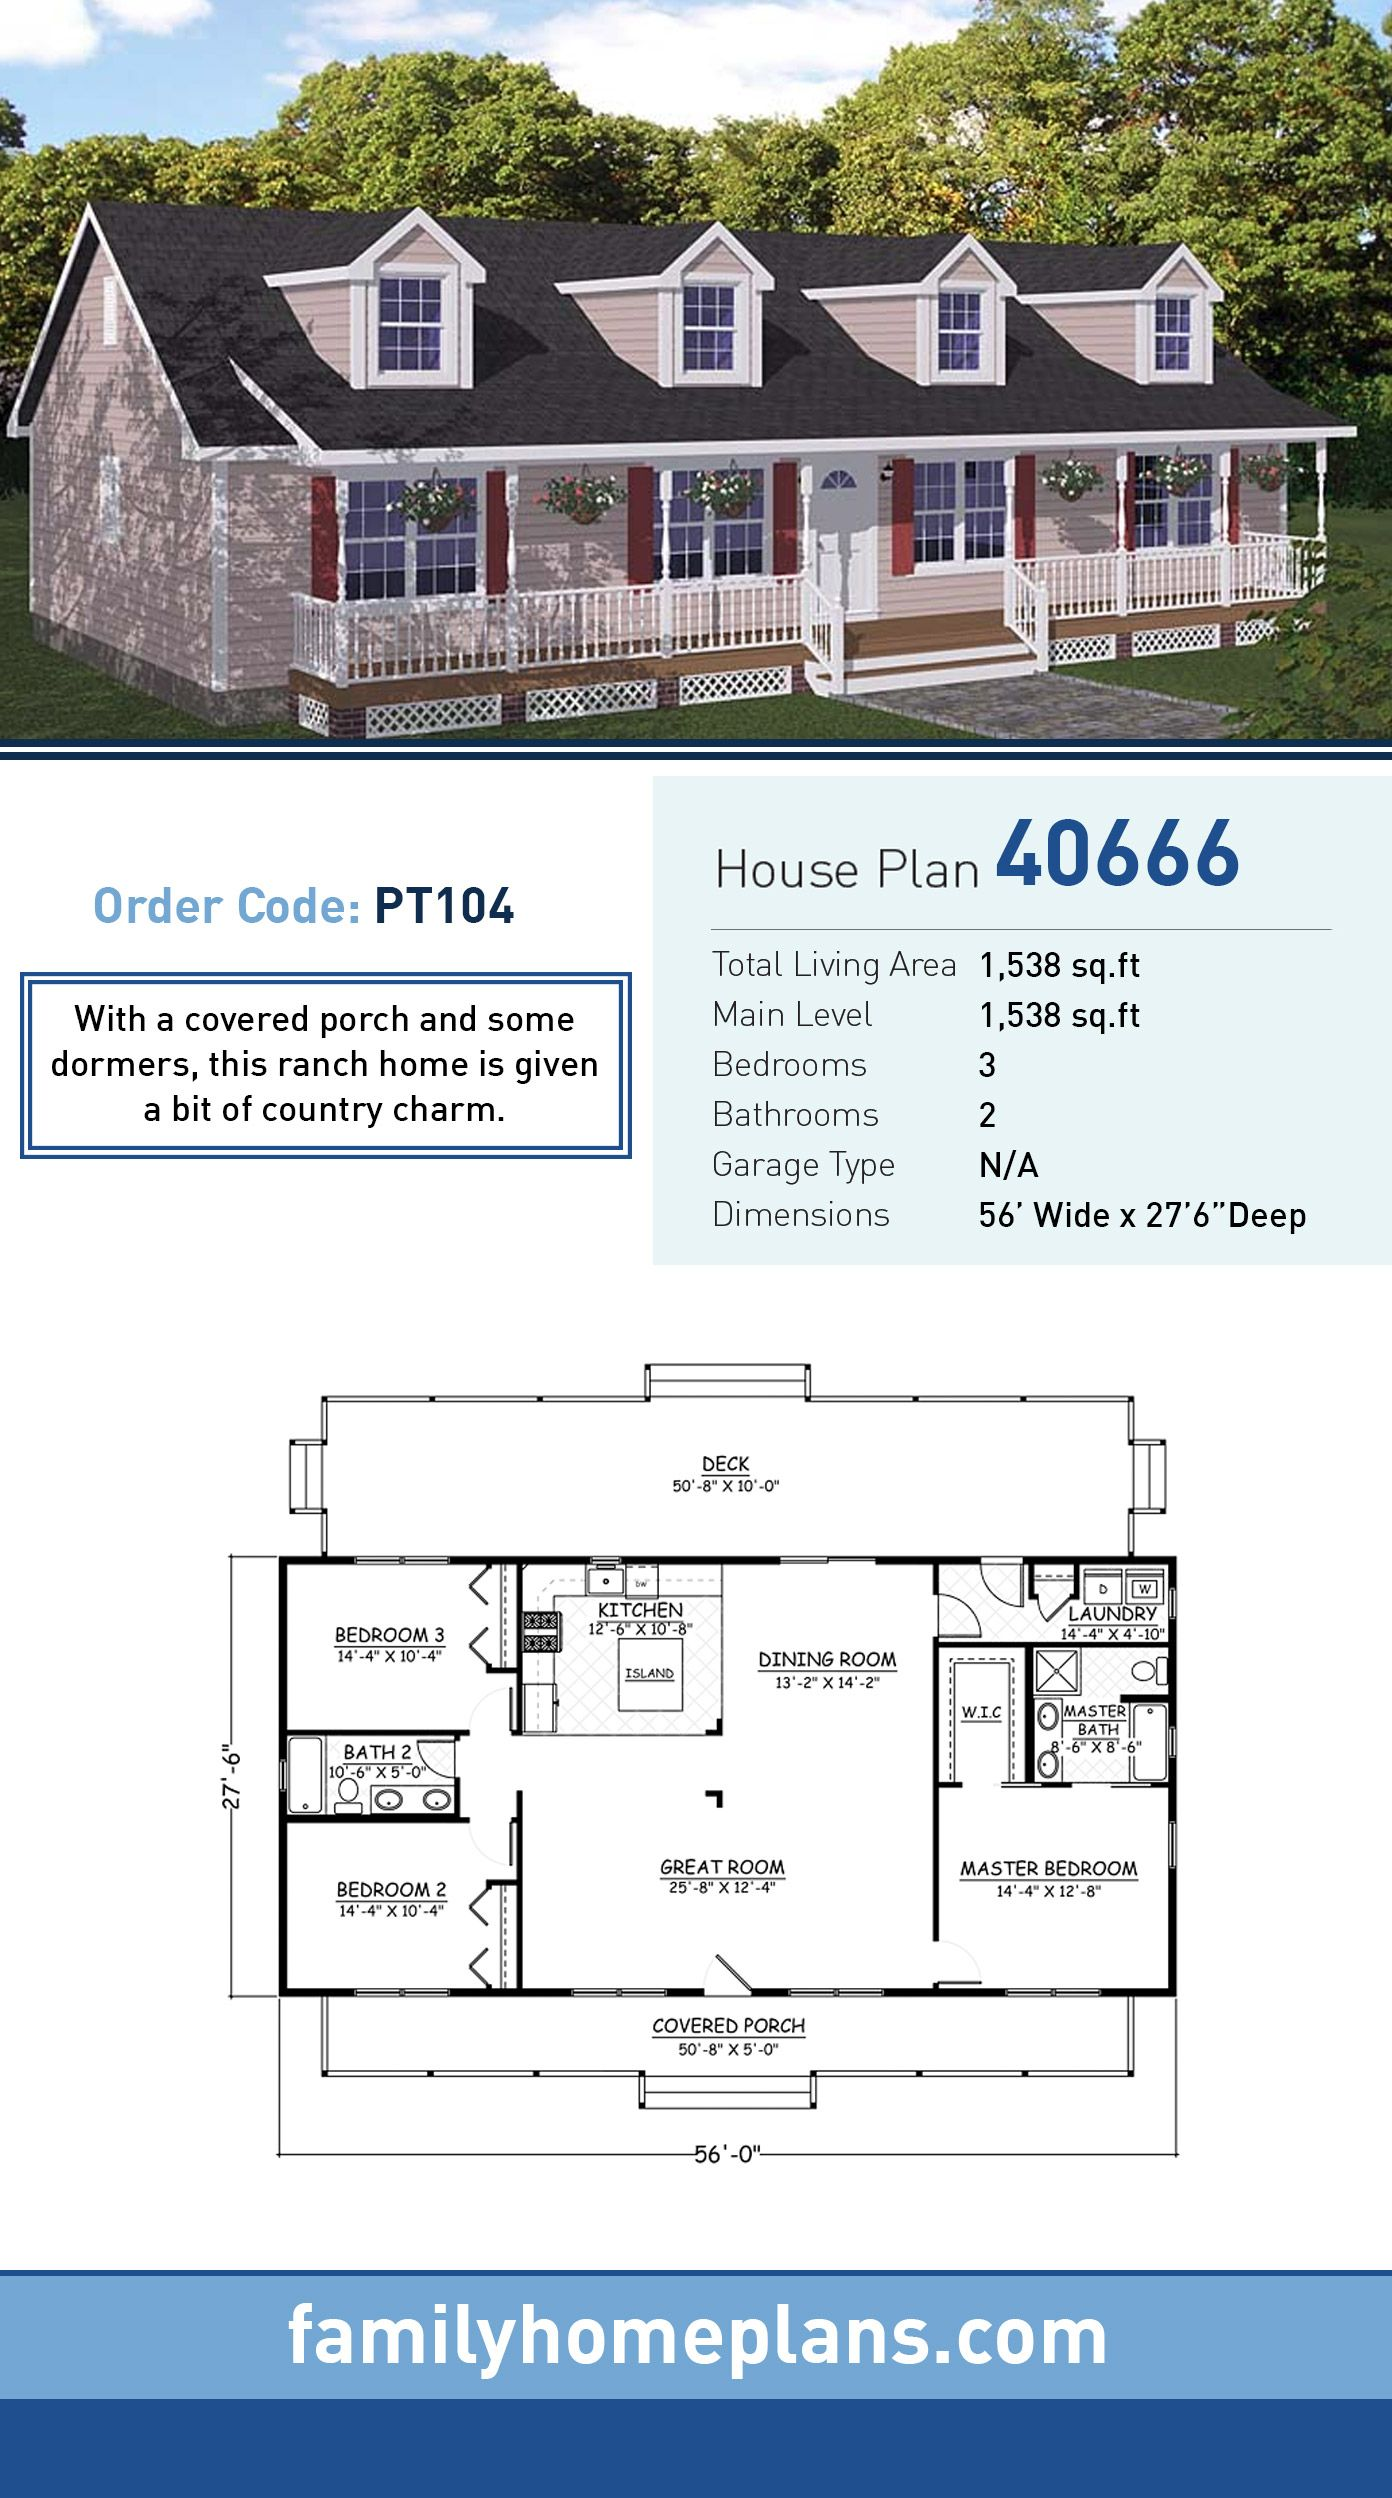 Southern Style House Plan 40666 With 3 Bed 2 Bath Ranch House Plans Ranch Style House Plans Small House Plans